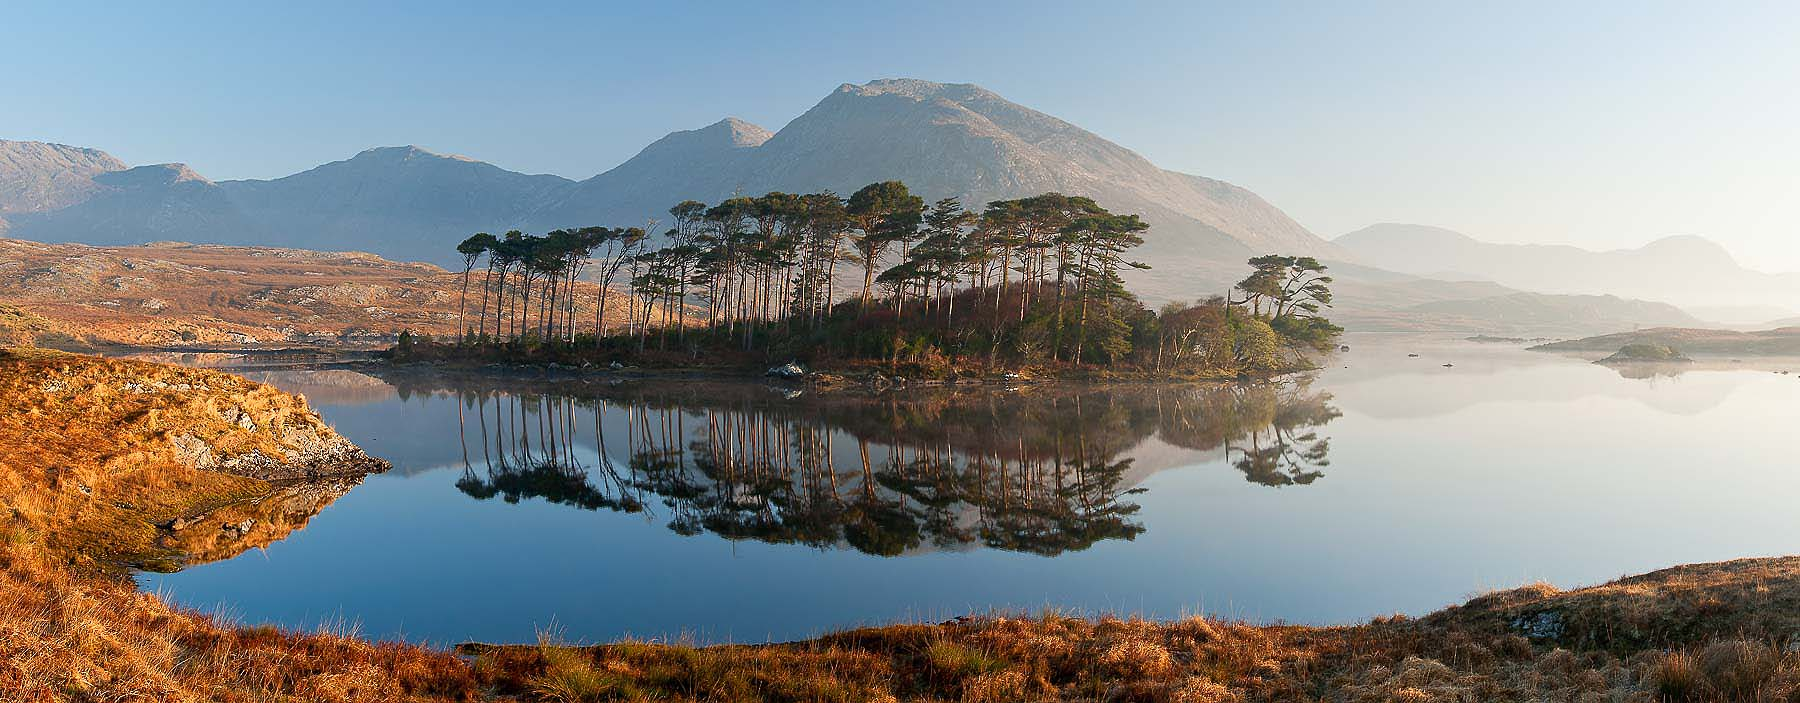 Derryclare-Lough-Tranquil-Dawn-Panoramic-Connemara-Ireland-Photographer